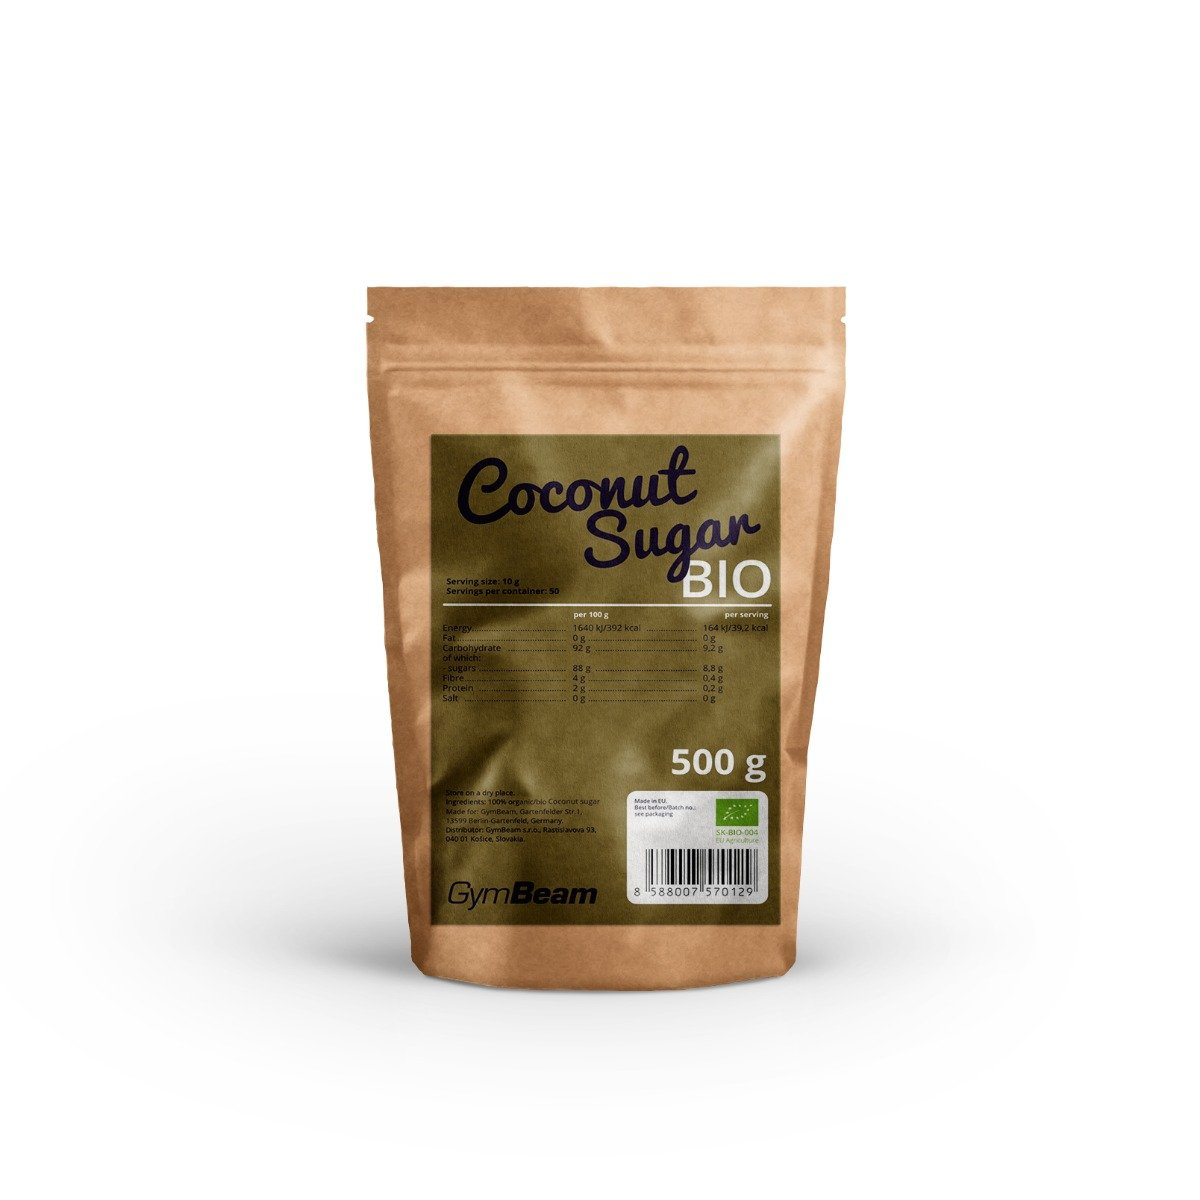 GymBeam Bio Coconut Sugar 500 g